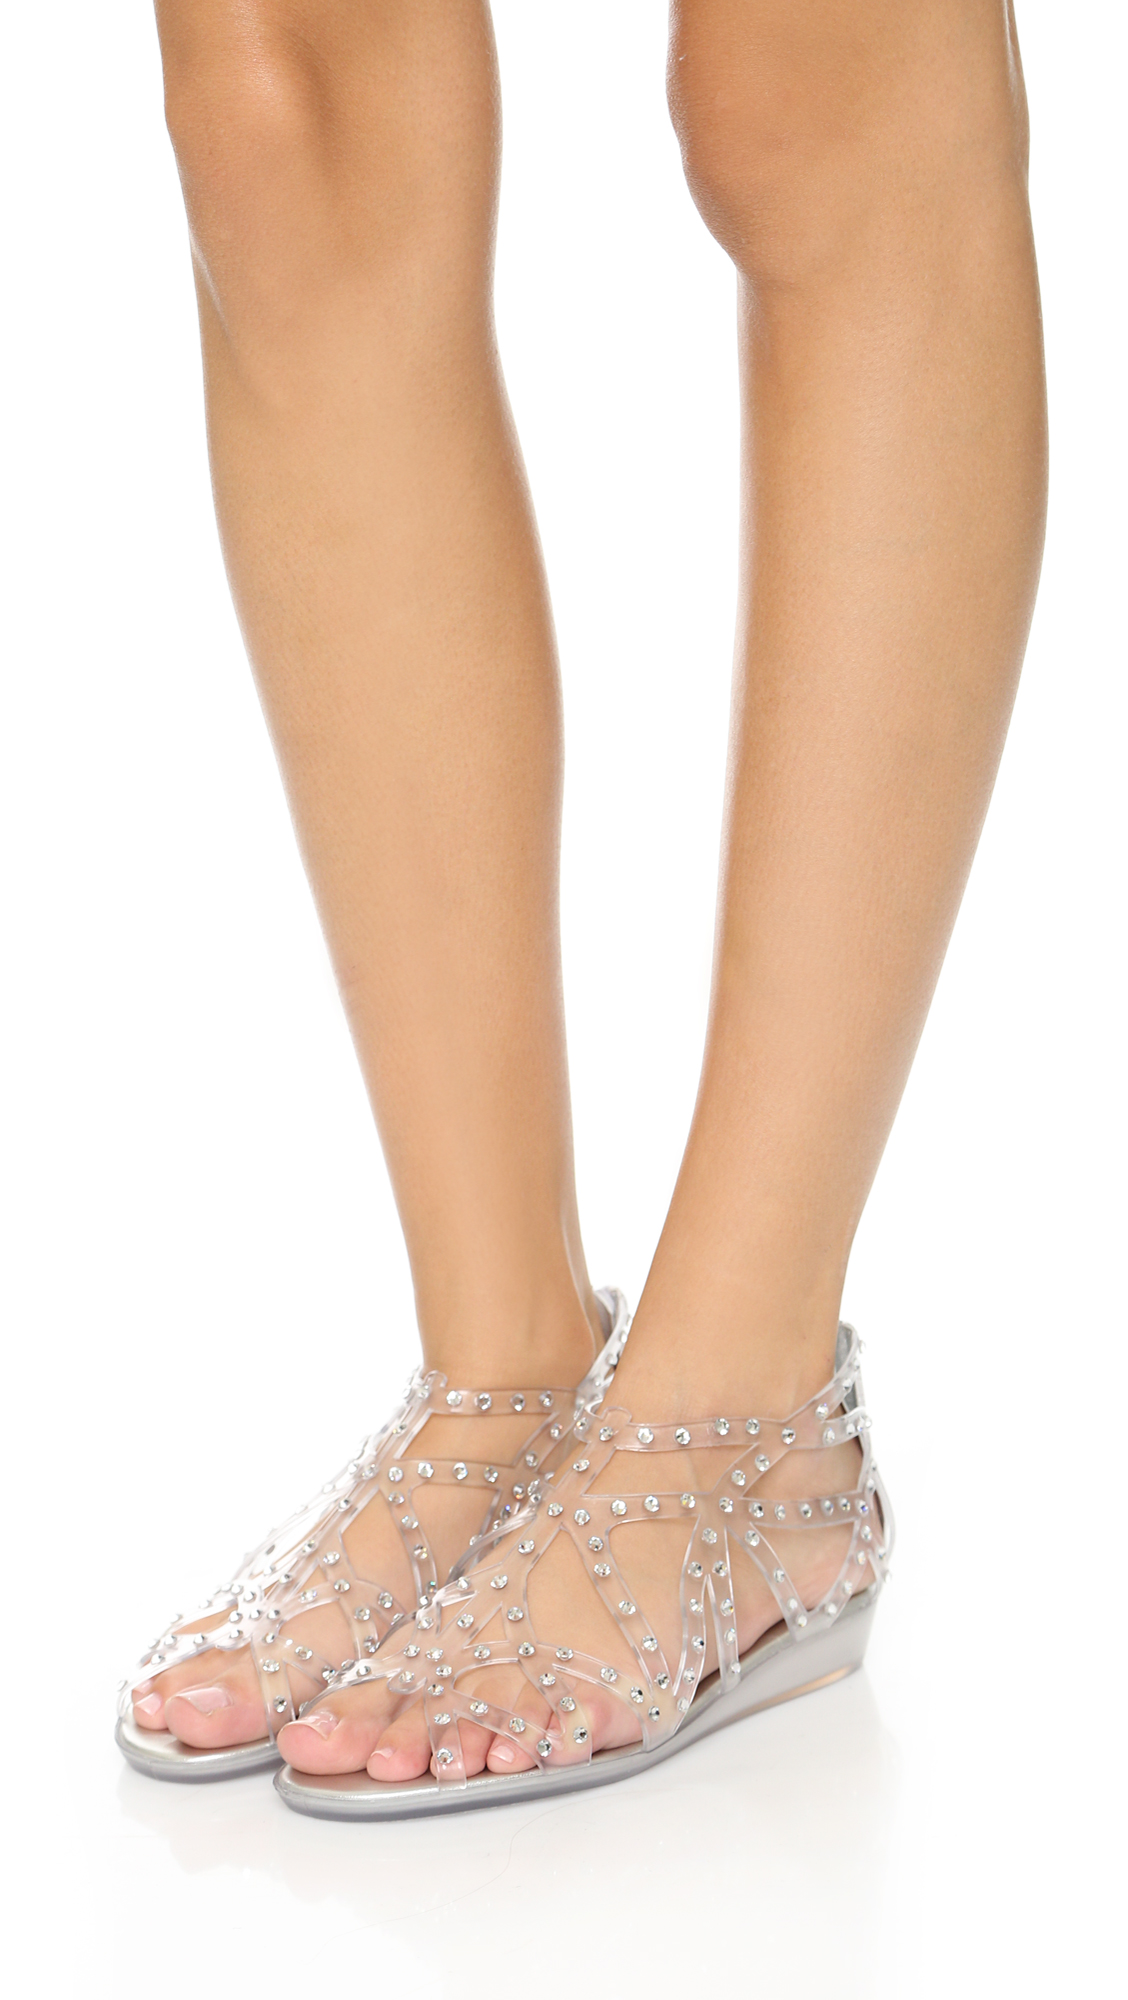 Stuart Weitzman Jelly Slide Sandals cheap sale low price sale visit new new styles online 4GeCaCw5WY